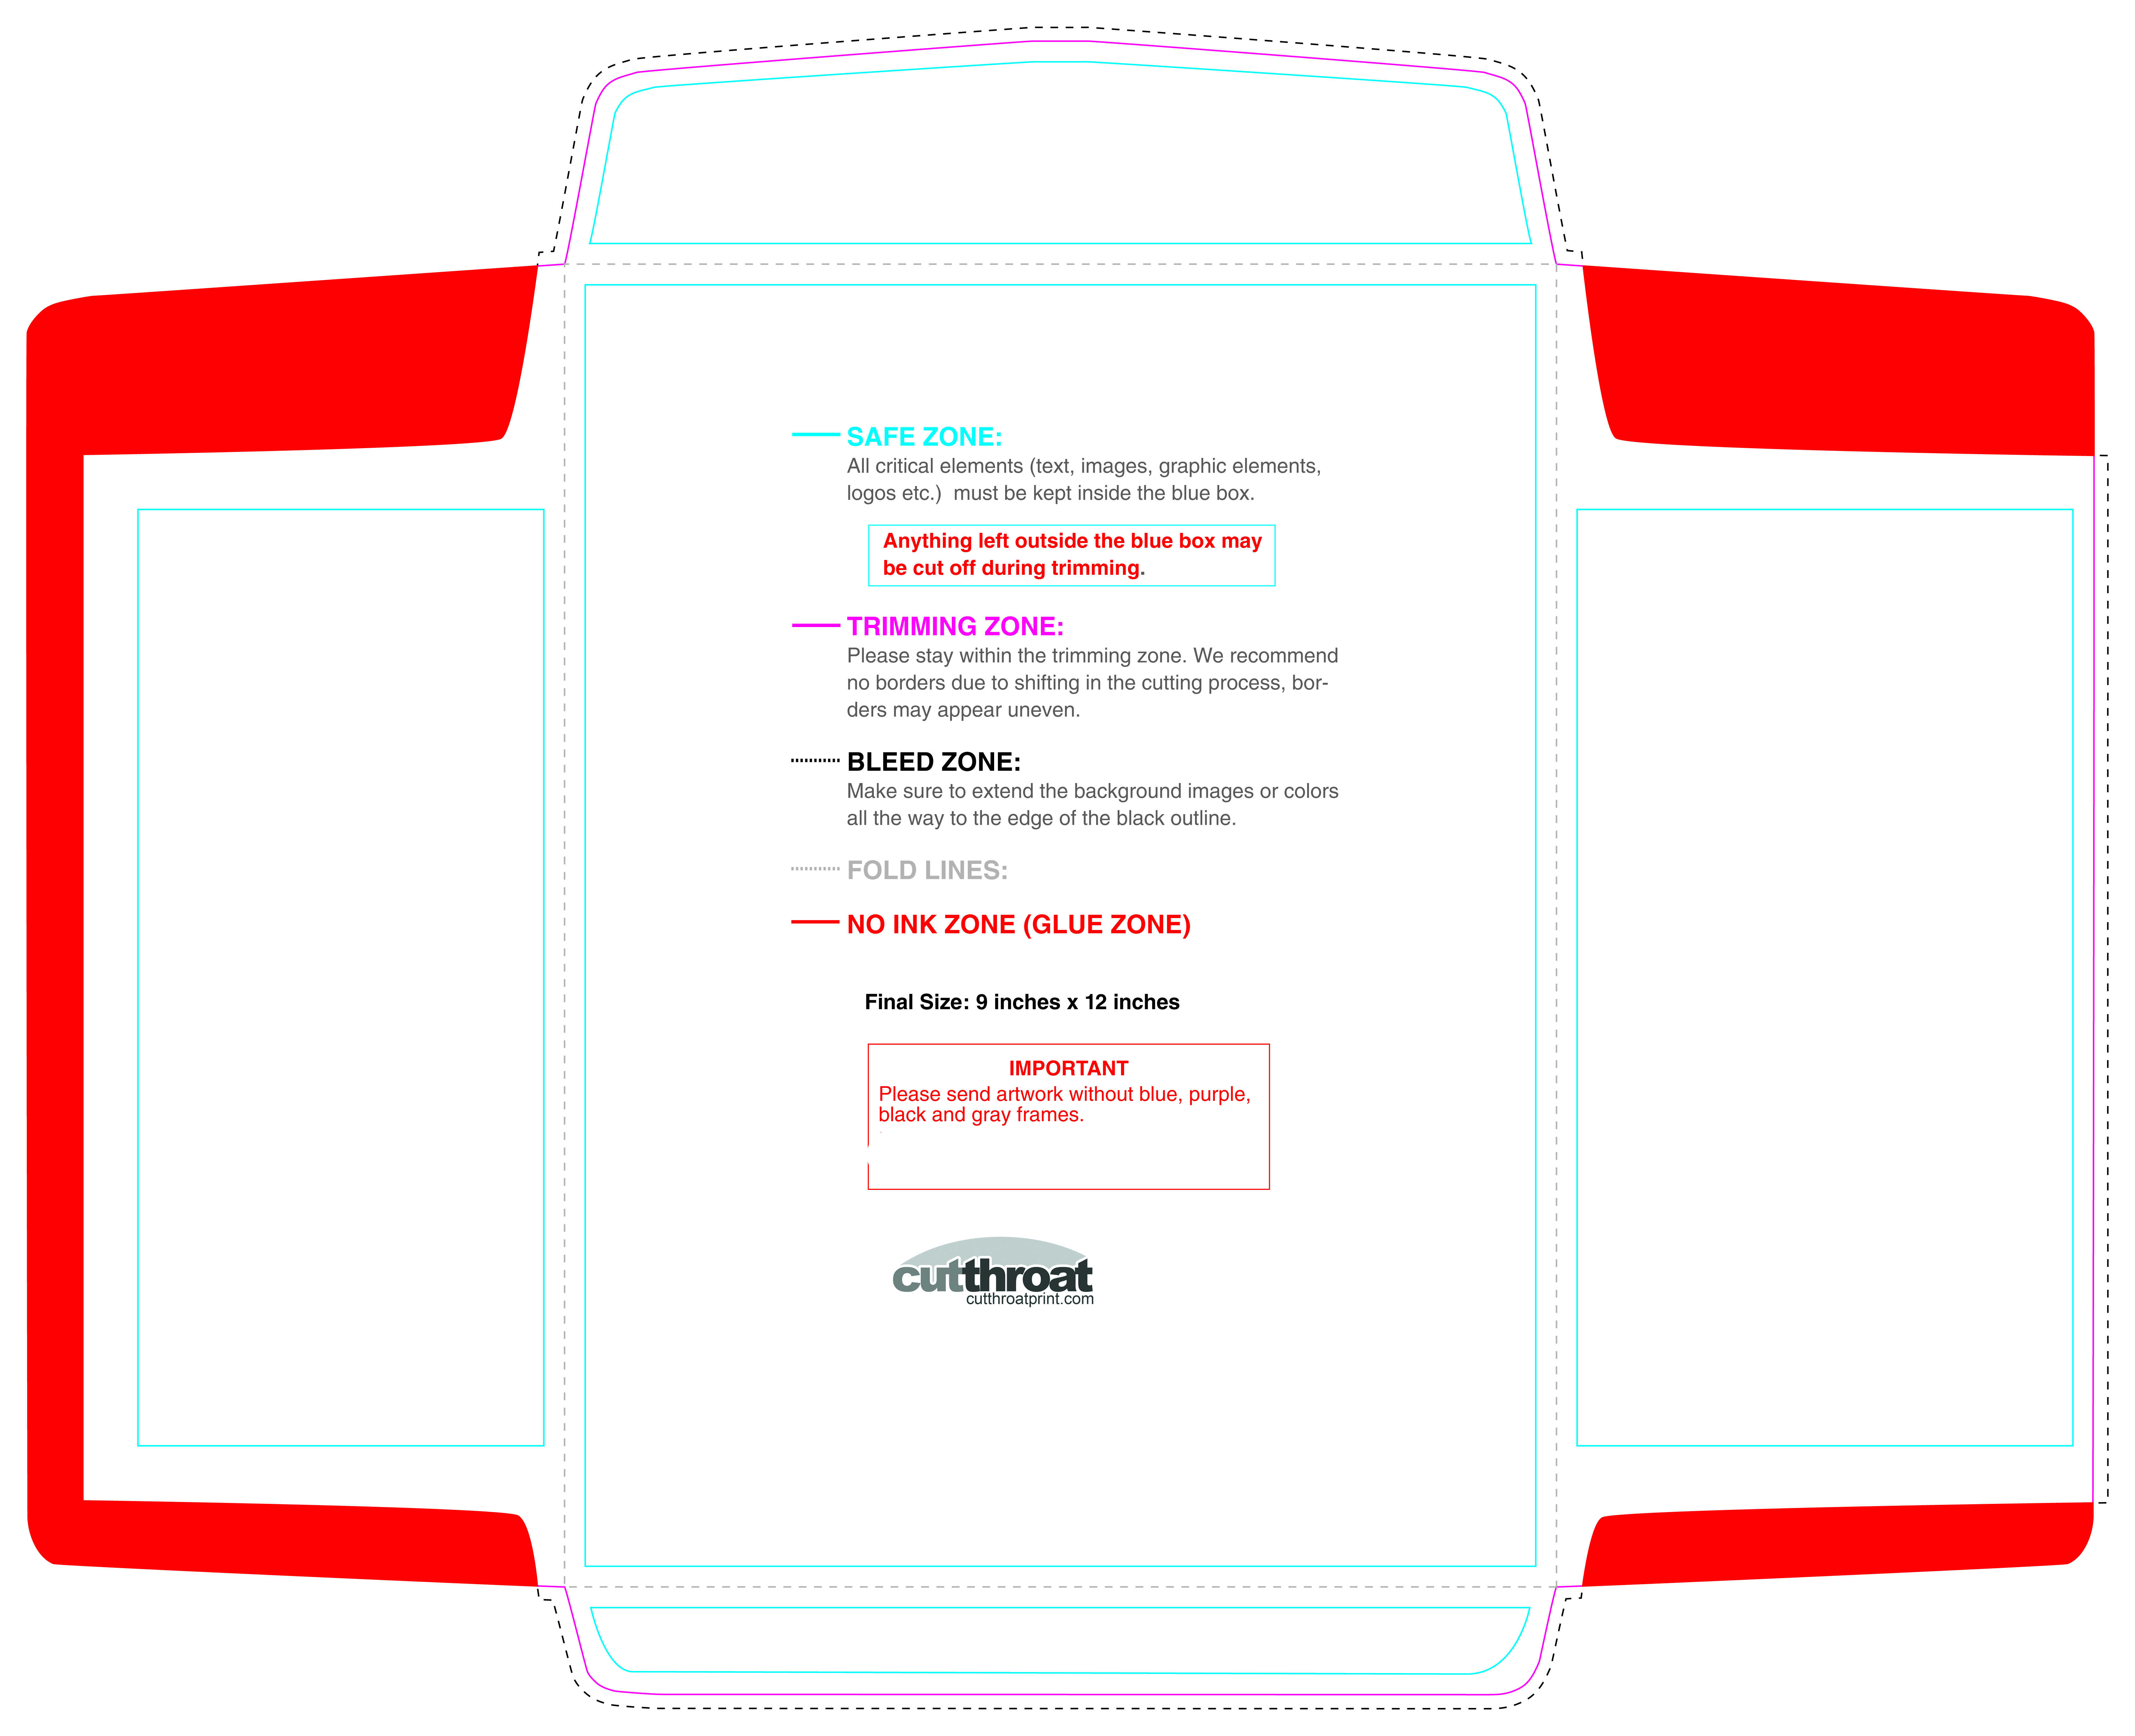 Fantastic 10 Best Resume Tips Huge 10 Half Hexagon Template Solid 1099 Excel Template 12 Month Timeline Template Youthful 1st Place Certificate Template Green2 Round Label Template Cutthroat PrintCustom Printed Envelopes With FREE SHIPPING!